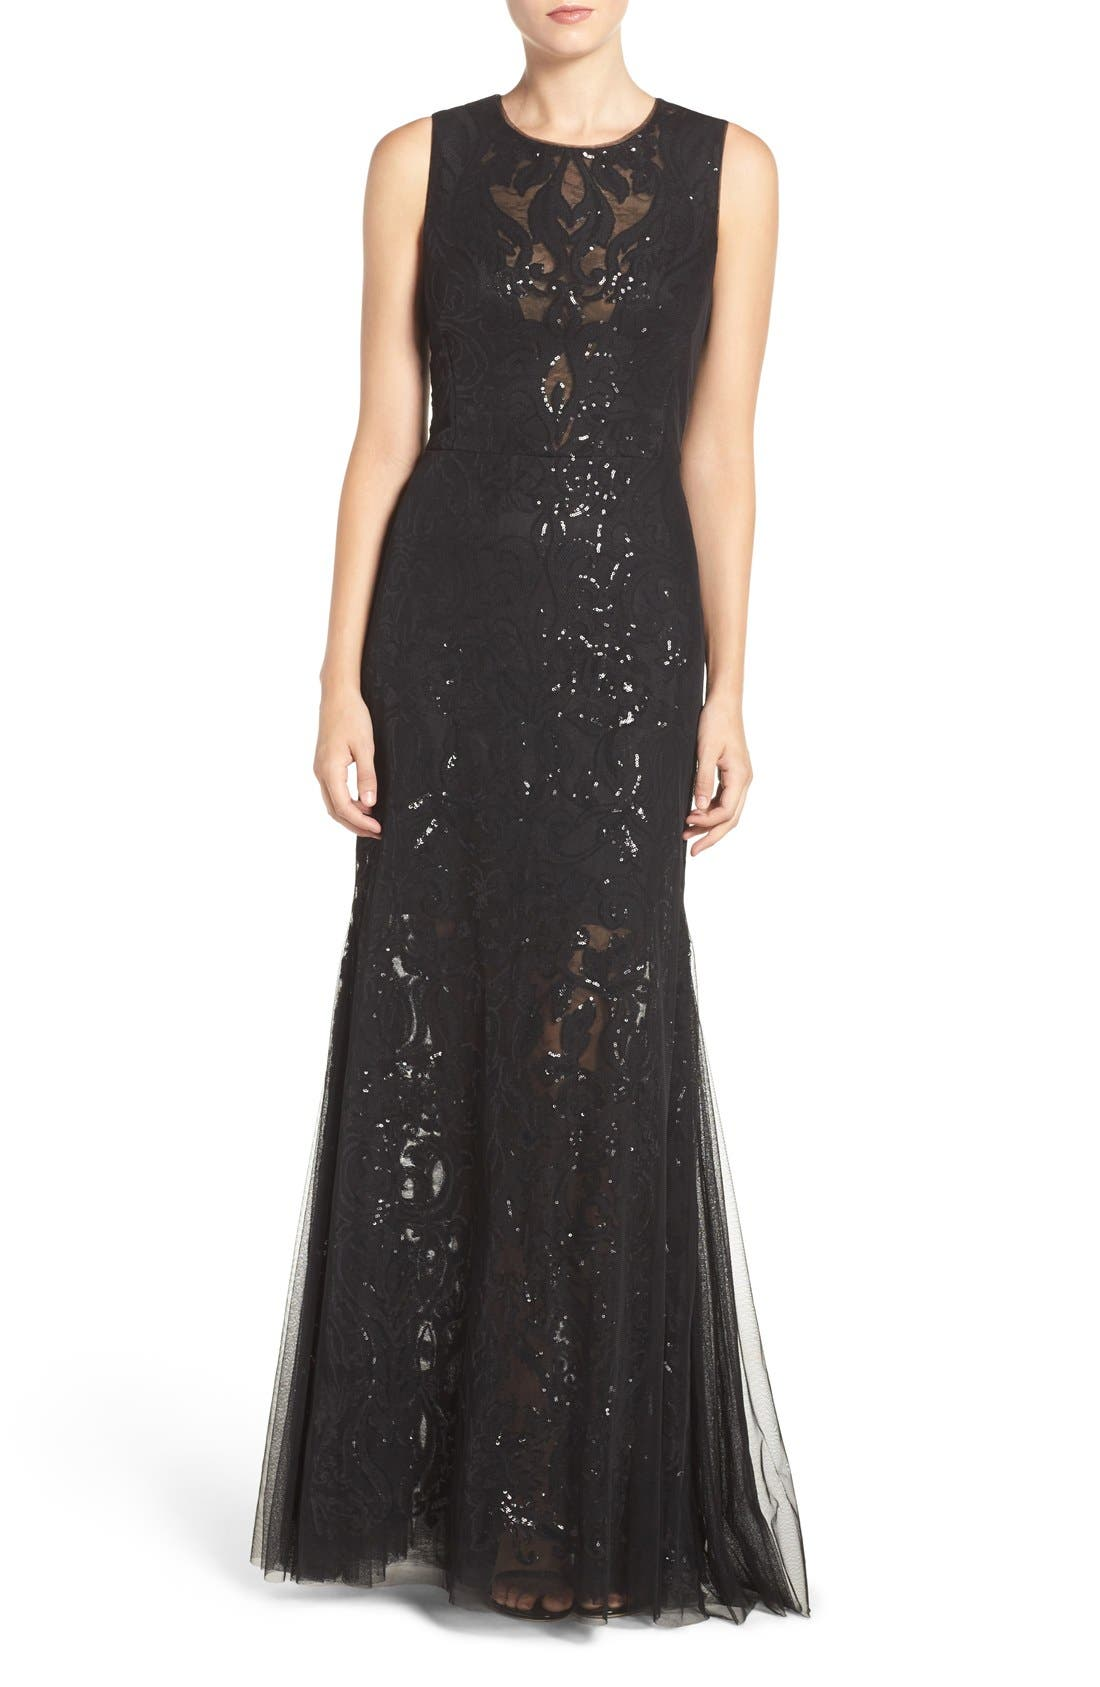 Vera Wang Evening Gowns & Eveningwear | Nordstrom